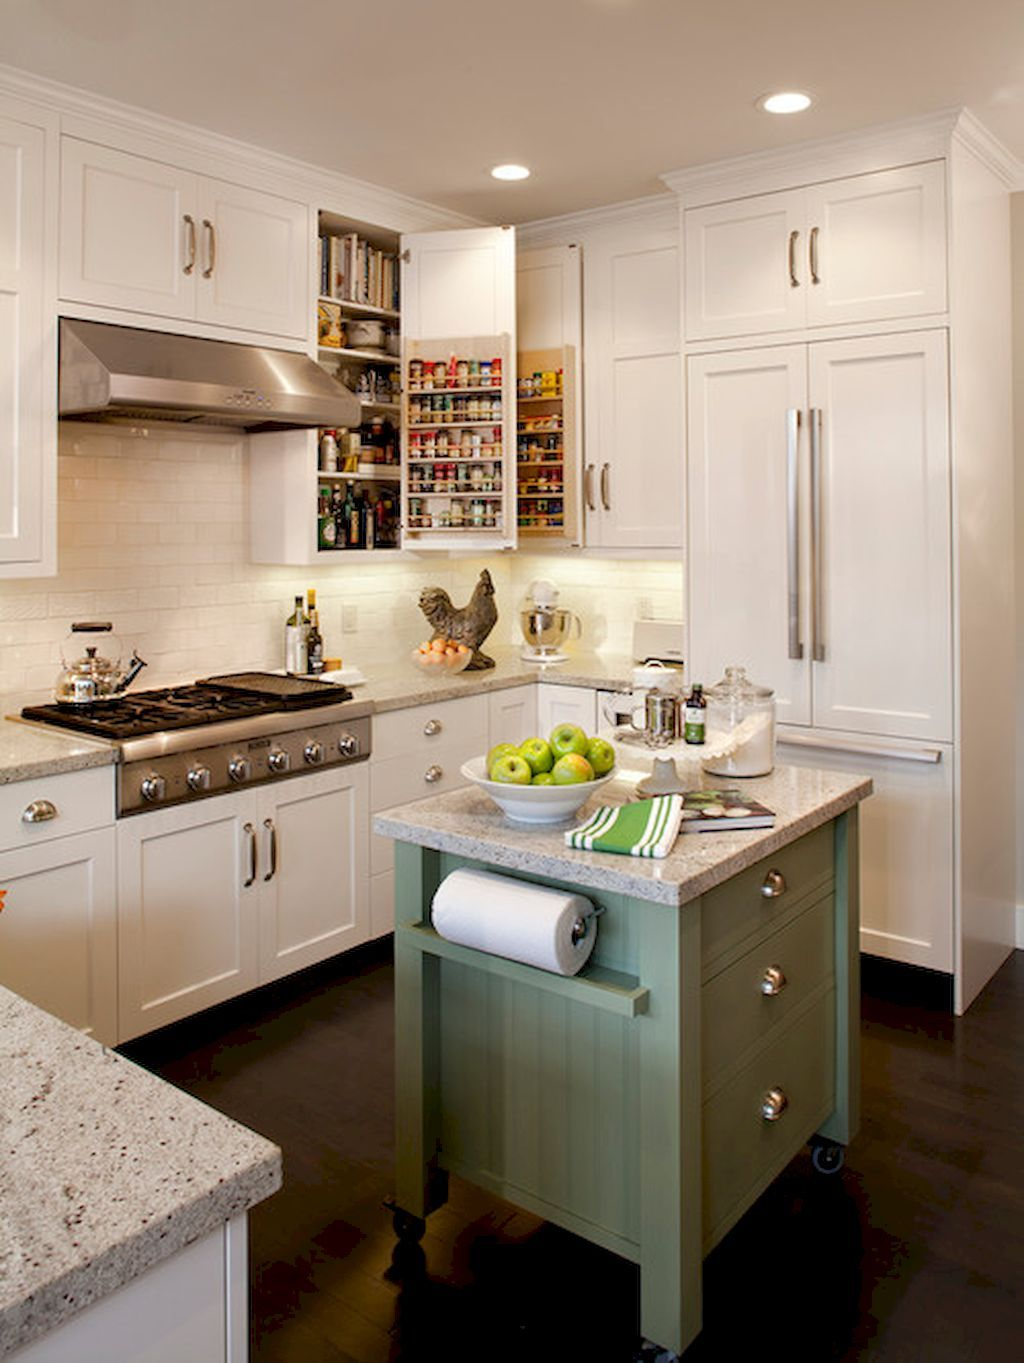 85 Best Inspire Small Kitchen Remodel Ideas  Kitchens Remodeled Inspiration Kitchen Remodel Ideas Decorating Inspiration